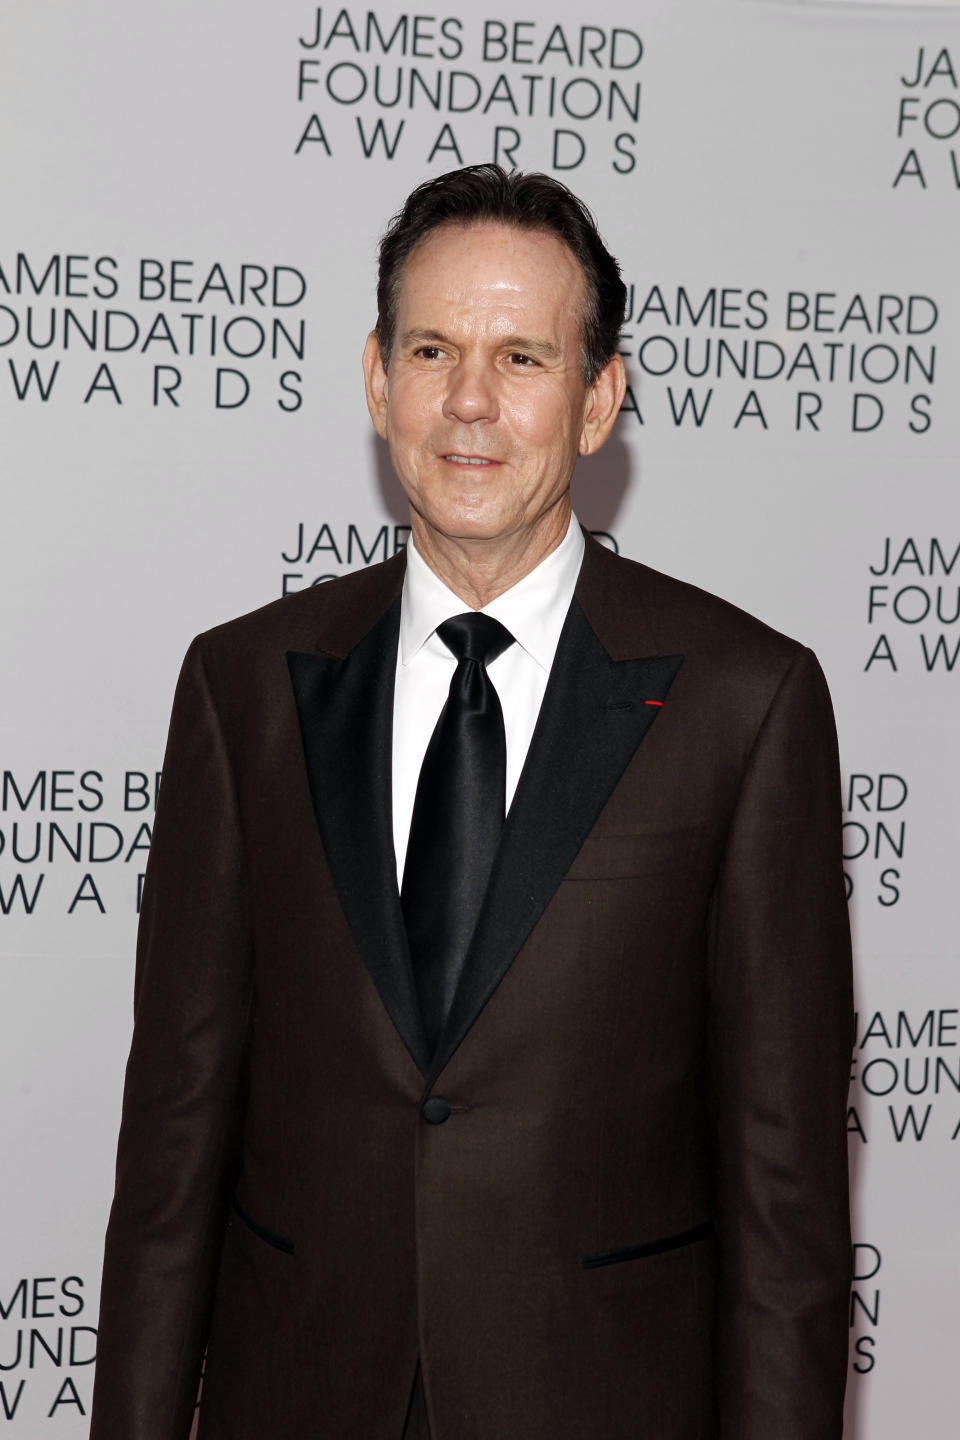 Chef Thomas Keller arrives for the James Beard Foundation Awards, Monday, May 7, 2012, in New York. (AP Photo/Jason DeCrow)